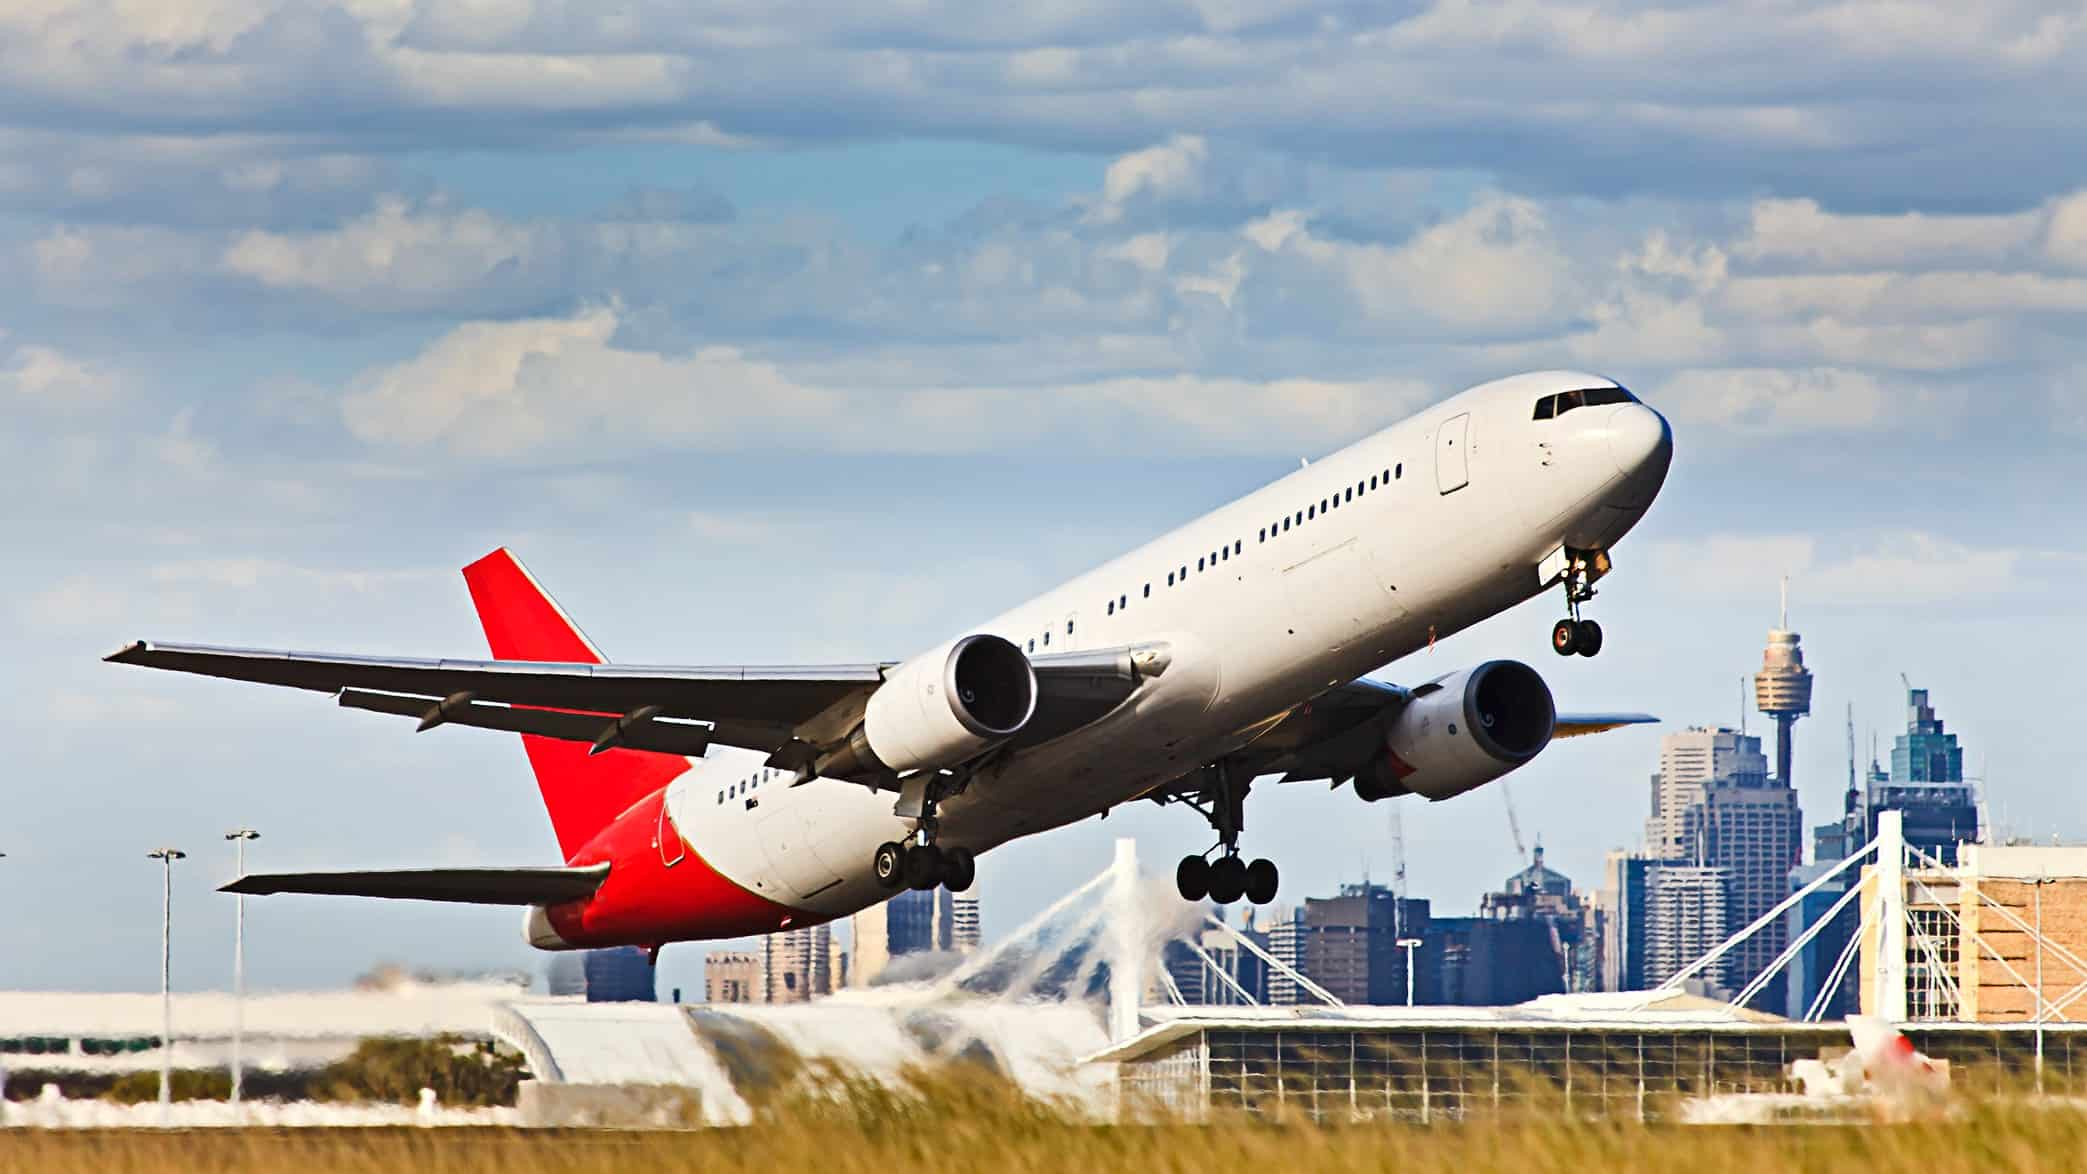 Plane taking off from Sydney airport with CBD in background